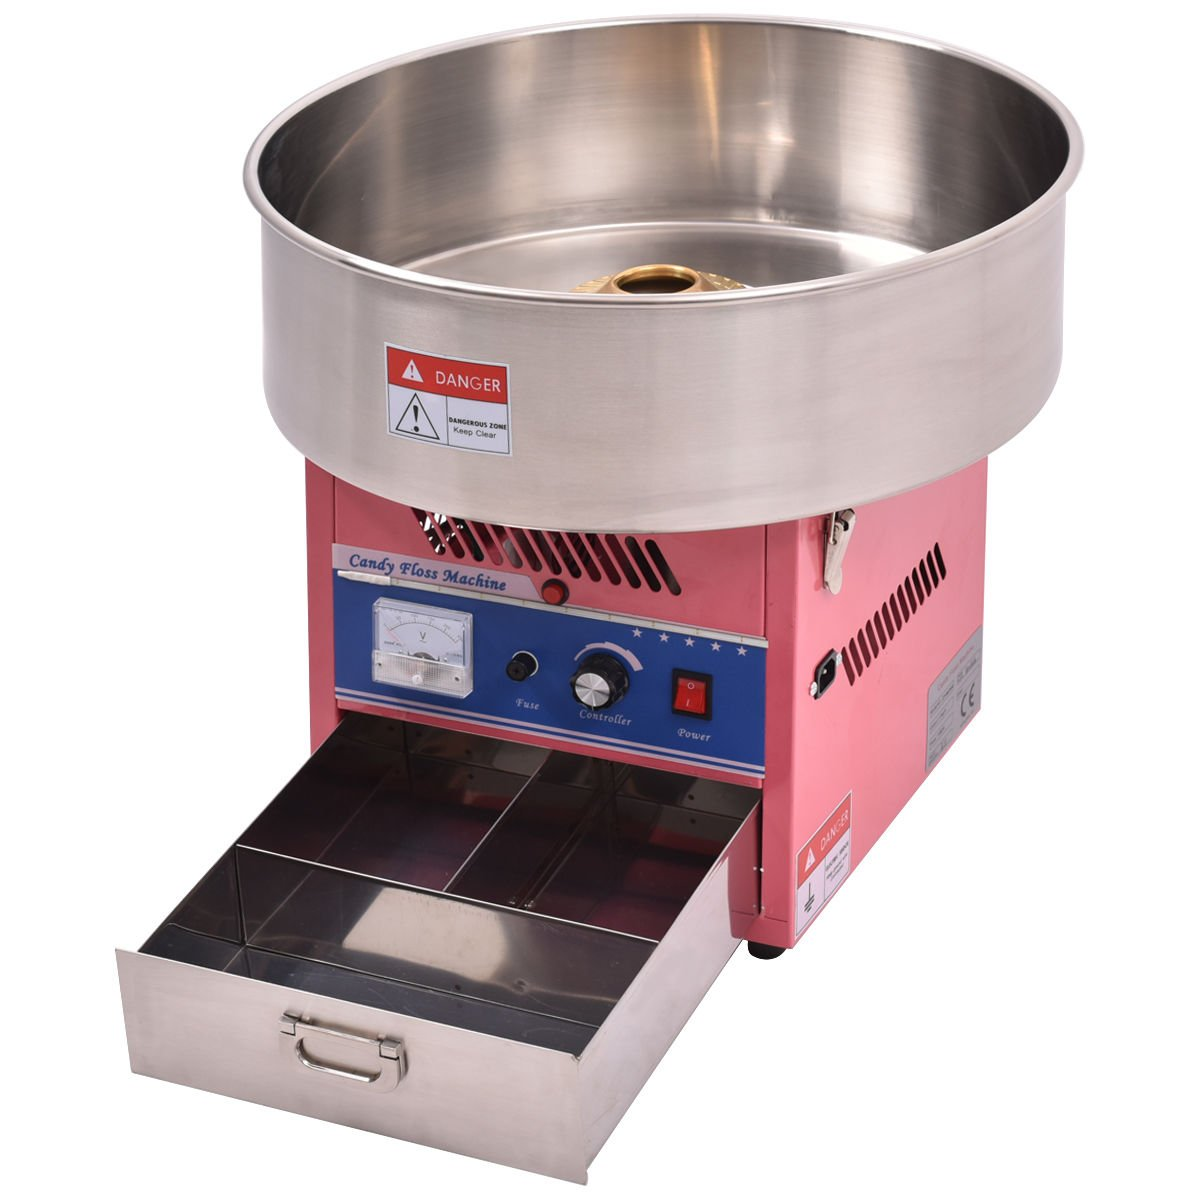 Giantex Electric Cotton Candy Machine Floss Maker Commercial Carnival Party Pink by Giantex (Image #3)